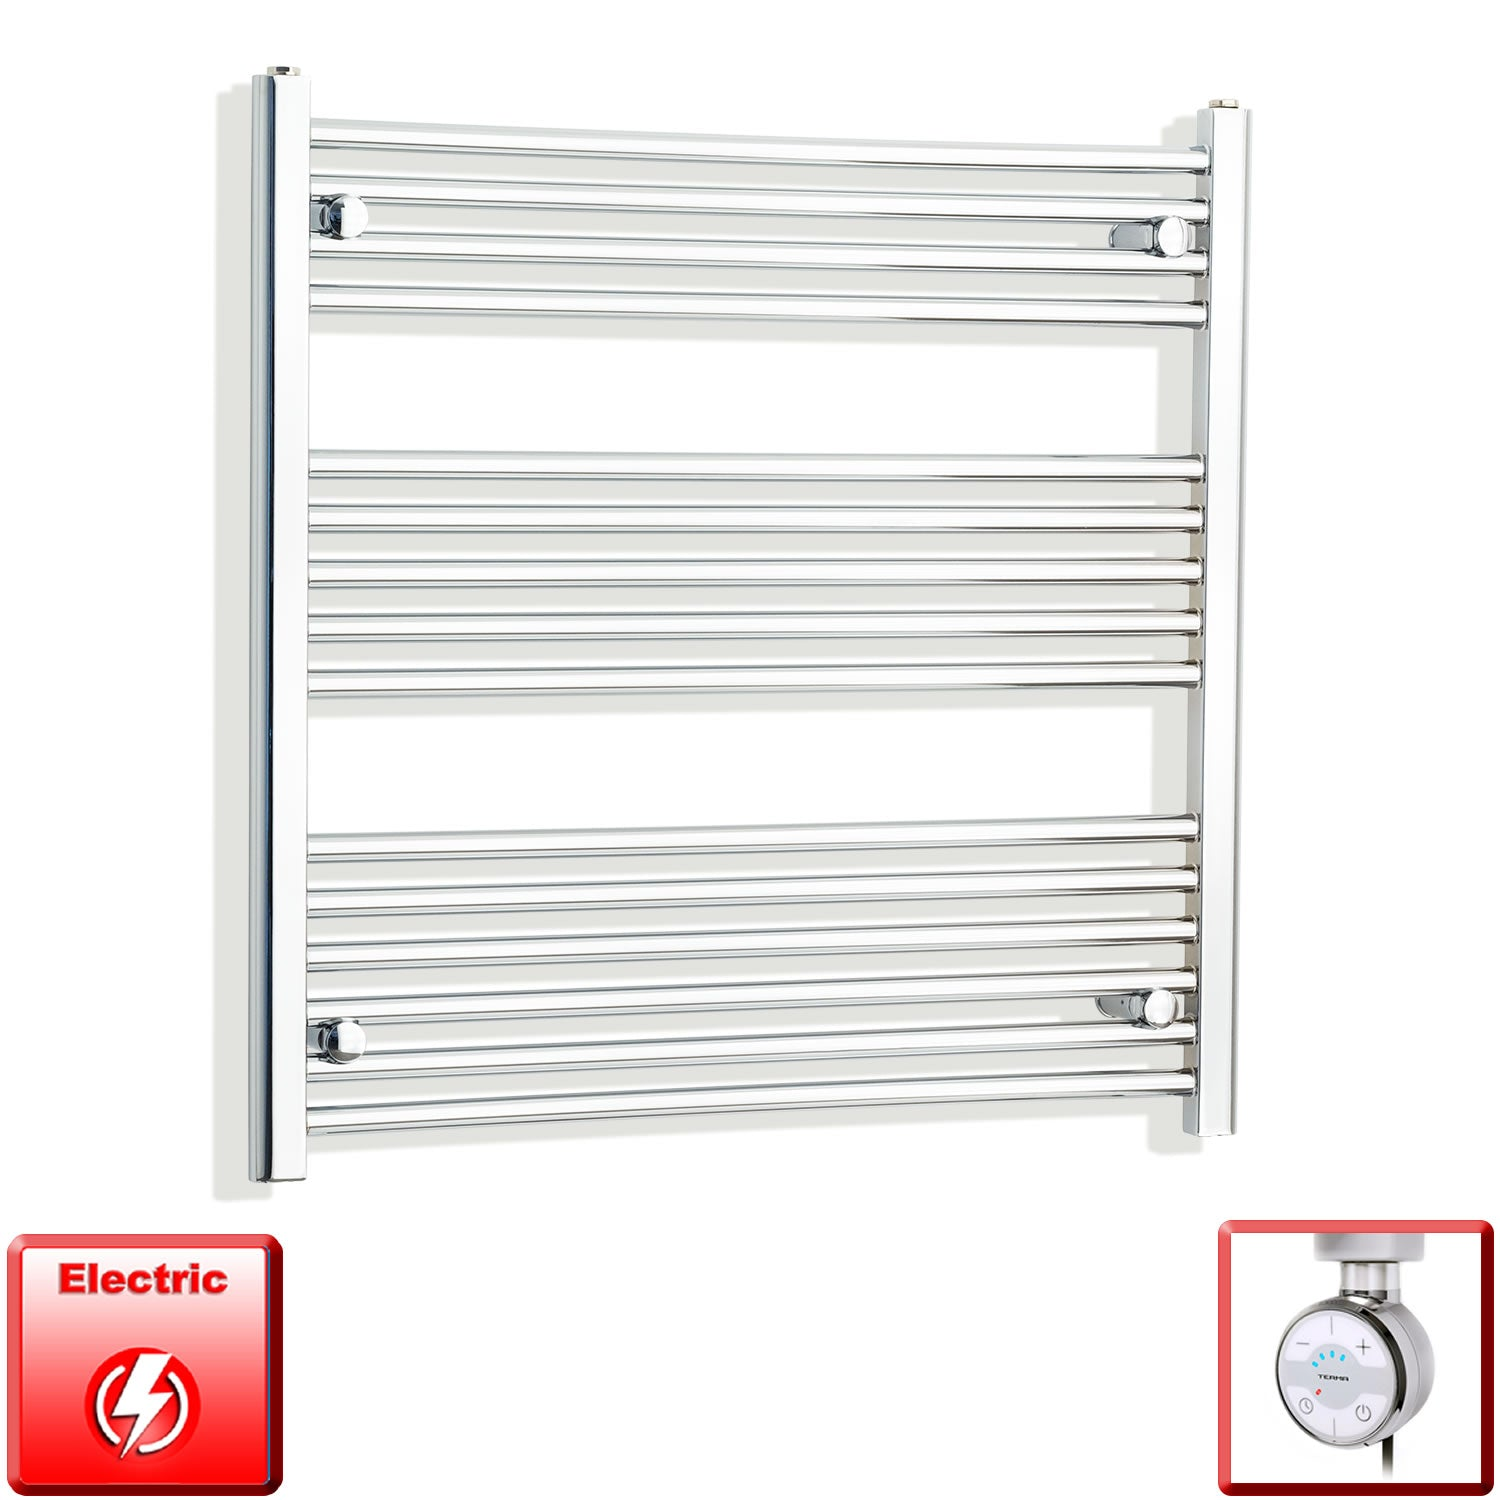 900mm Wide 800mm High Pre-Filled Chrome Electric Towel Rail Radiator With Thermostatic MOA Element